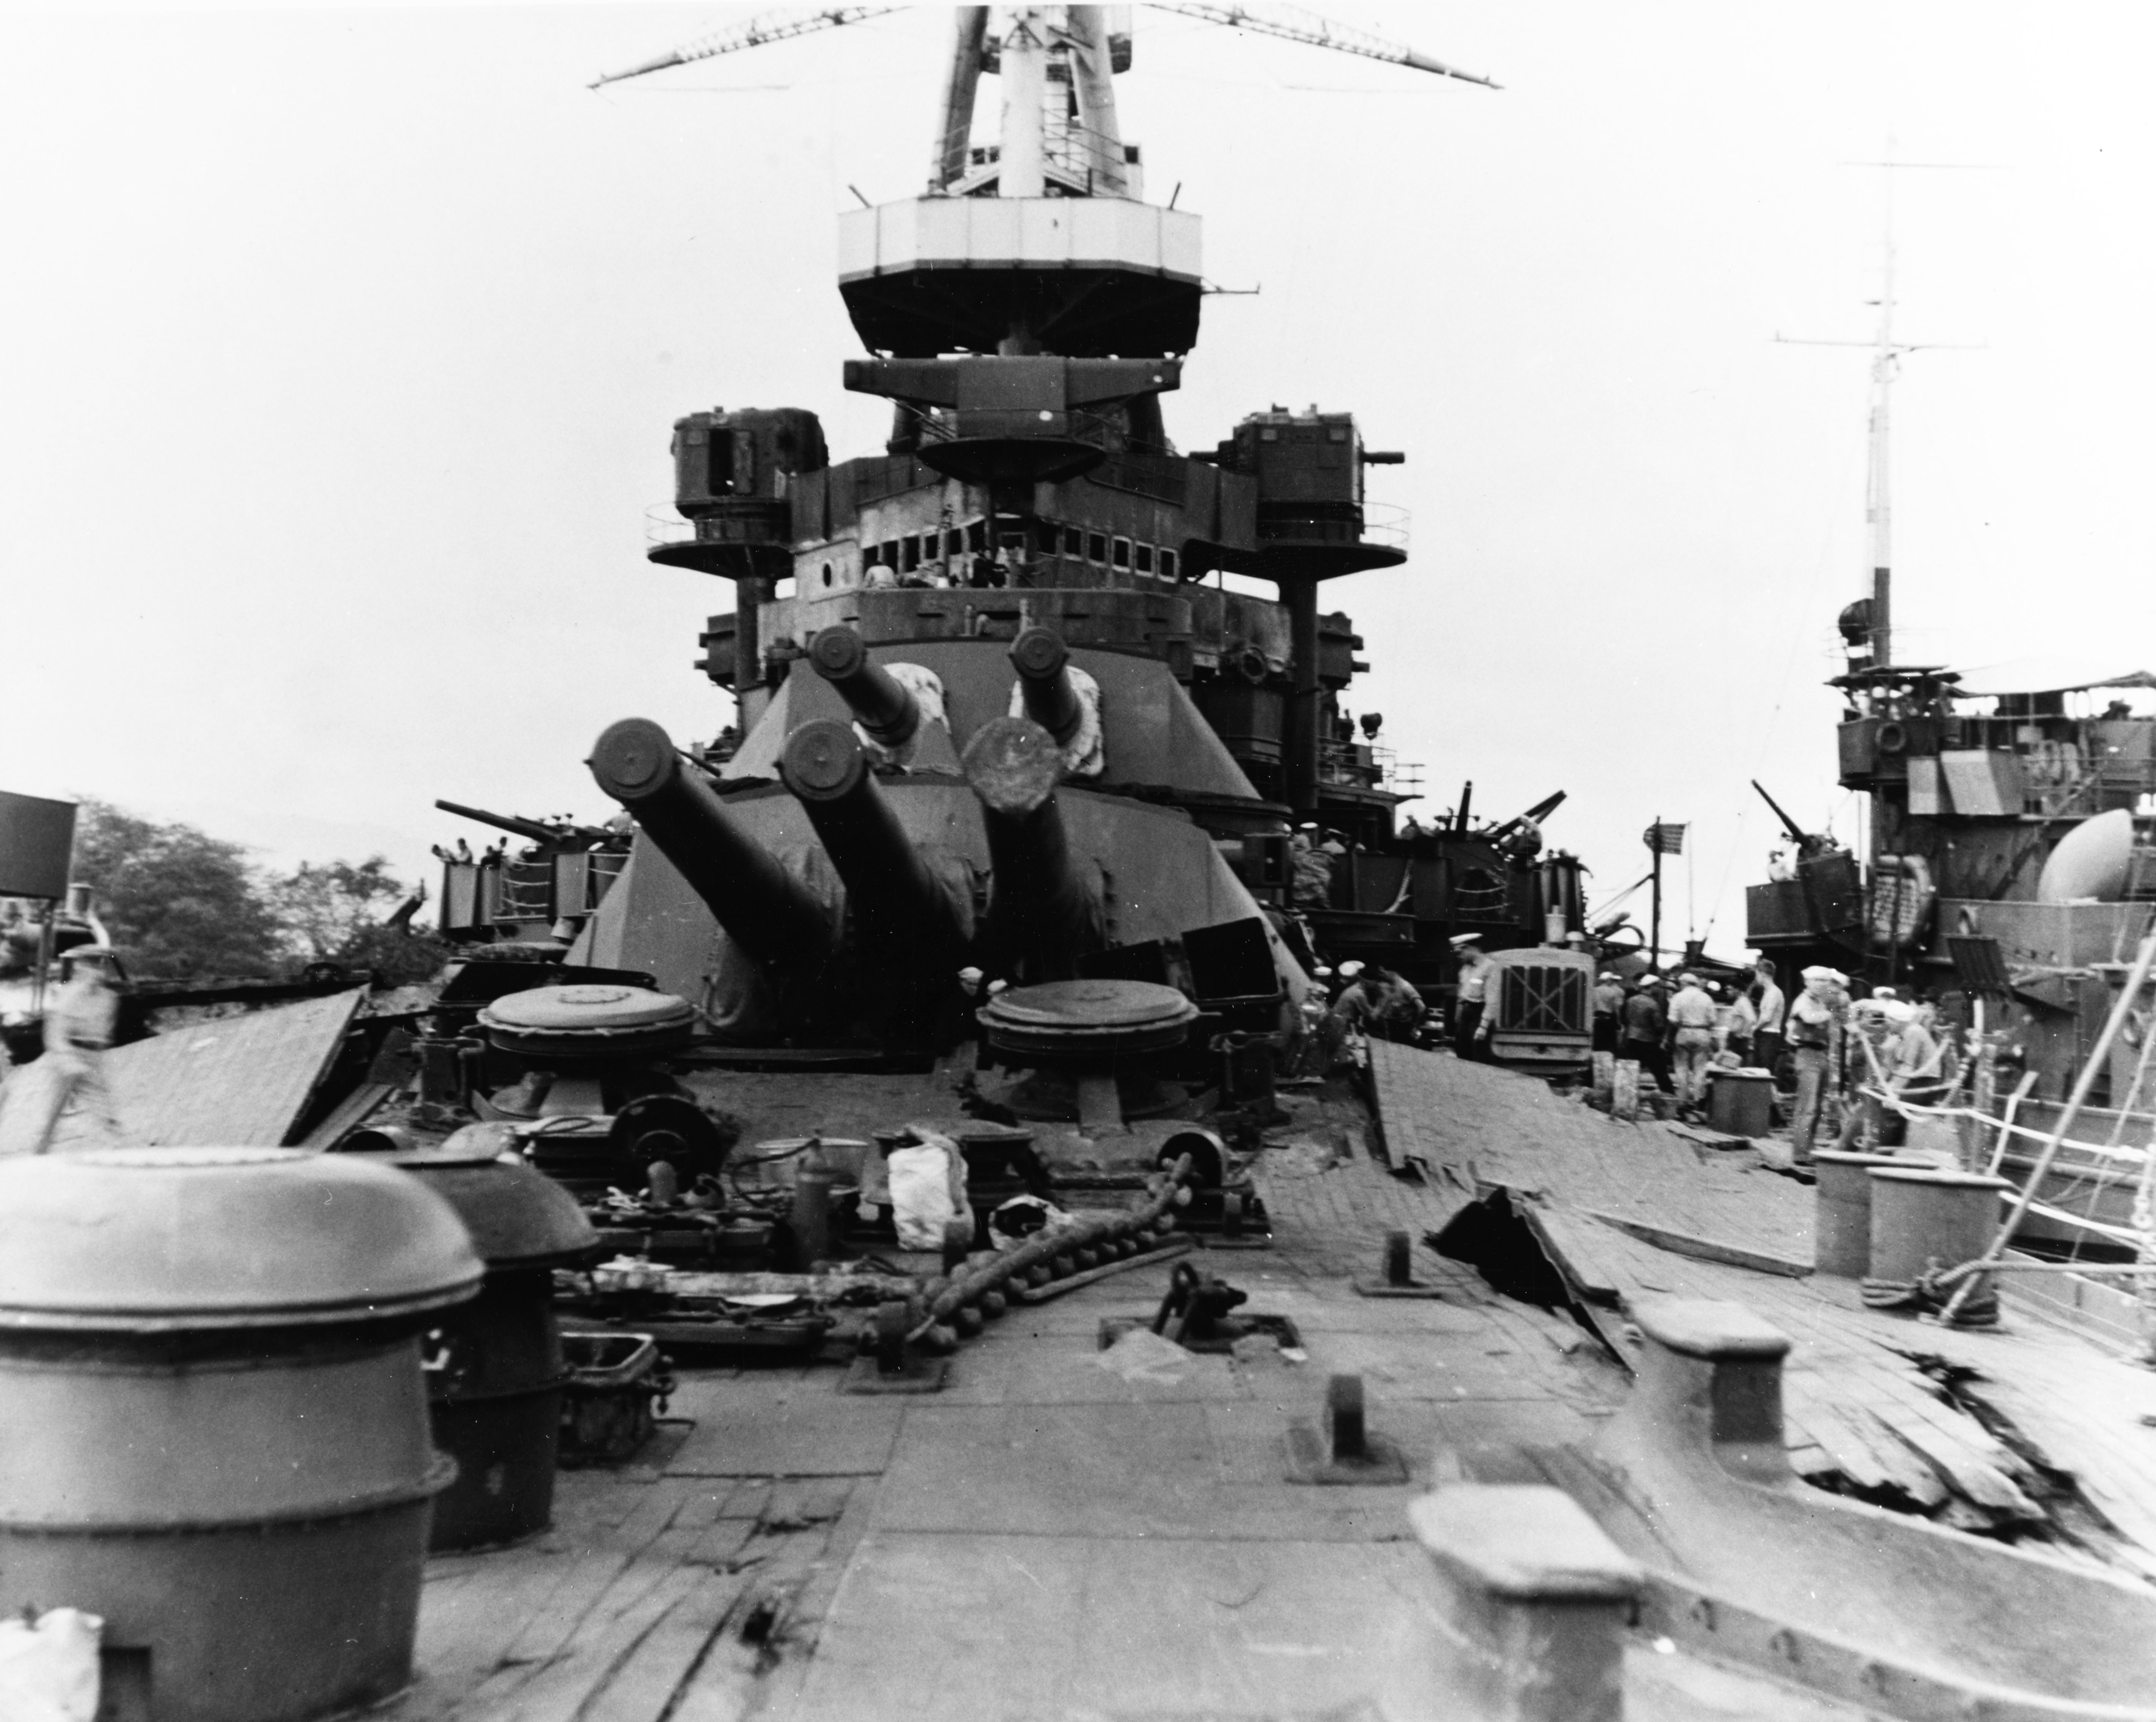 Photo of USS Nevada's deck in ruins